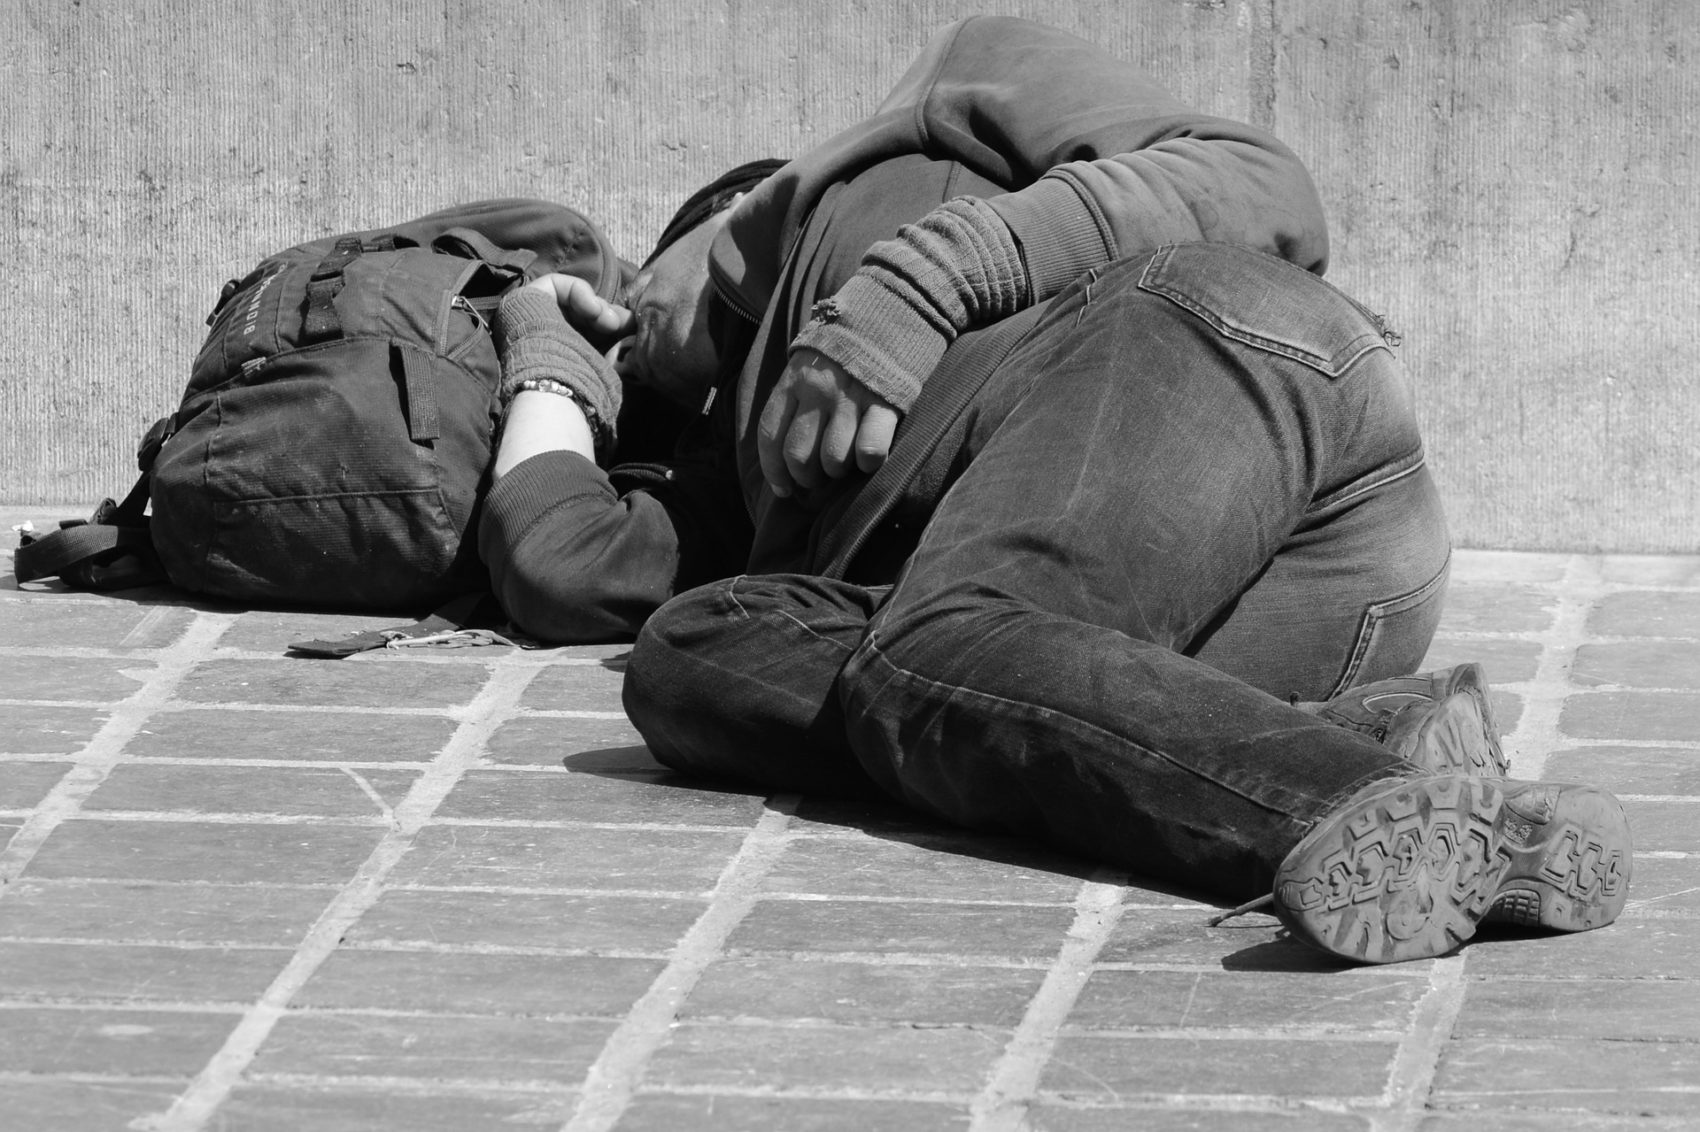 Member View: Homelessness and Poor Health: it's Time to Break the Link